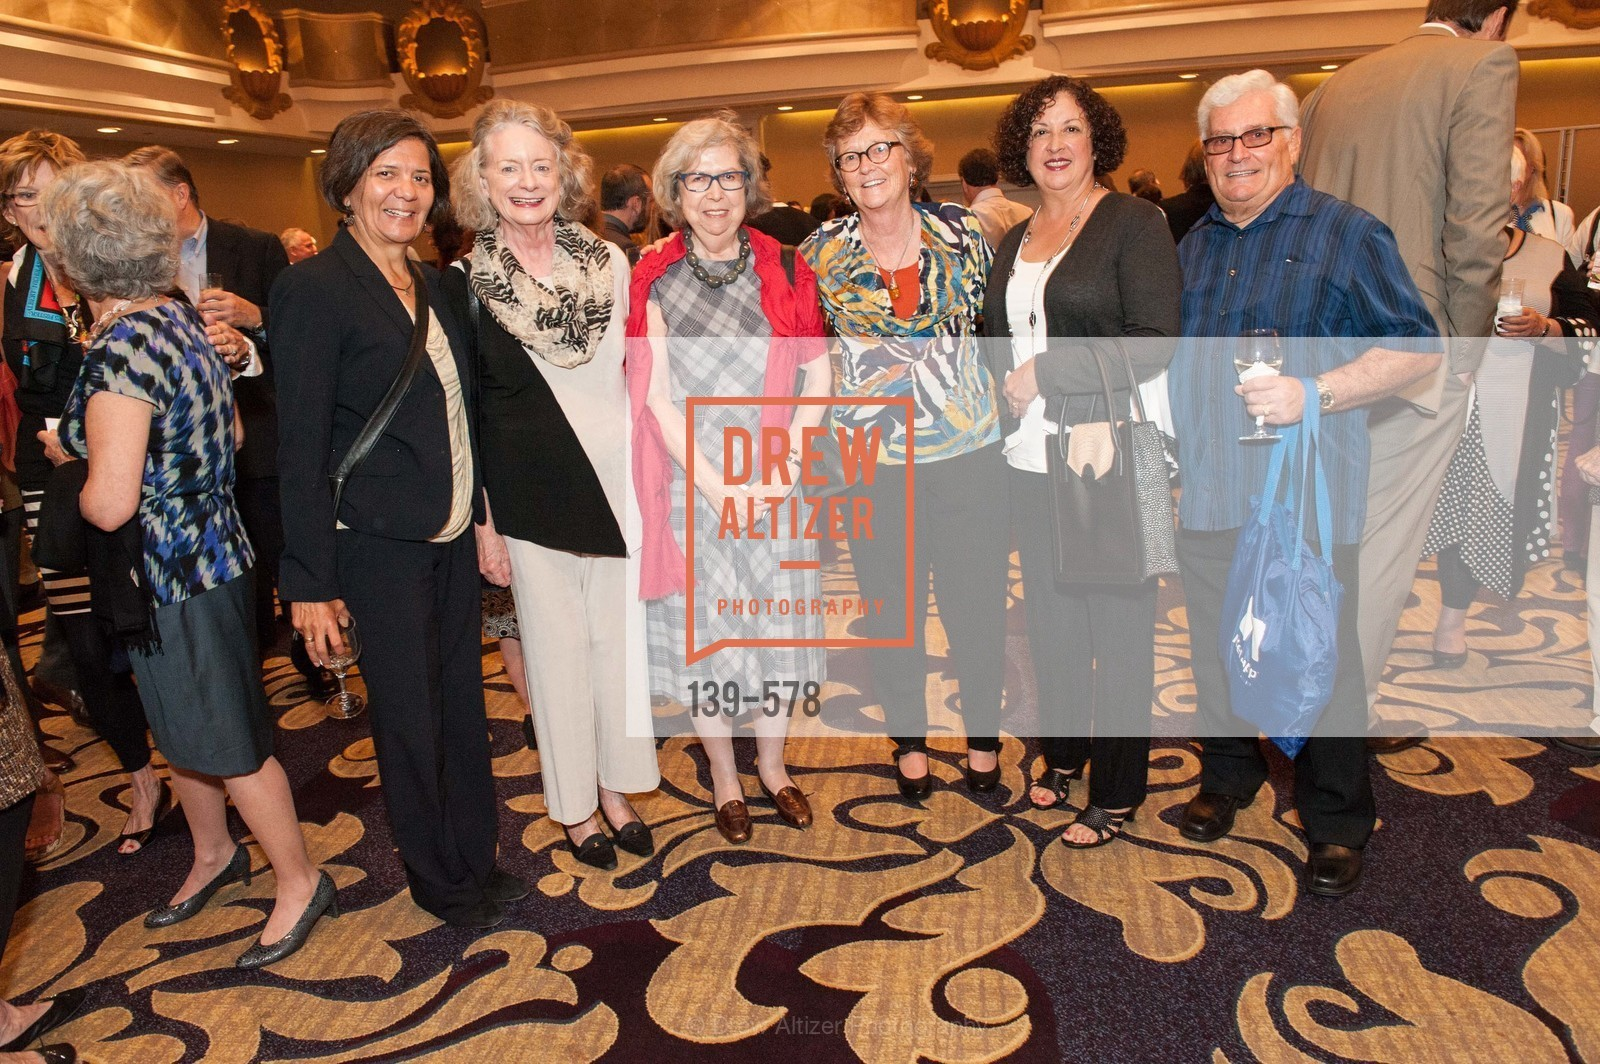 Sandra R. Hernandez, Maryanne McGuire-Hickey, Elsie Galley, Martha Ryan, Maria O'Brian, HOMELESS PRENATAL Annual Luncheon 2014, US, October 1st, 2014,Drew Altizer, Drew Altizer Photography, full-service agency, private events, San Francisco photographer, photographer california